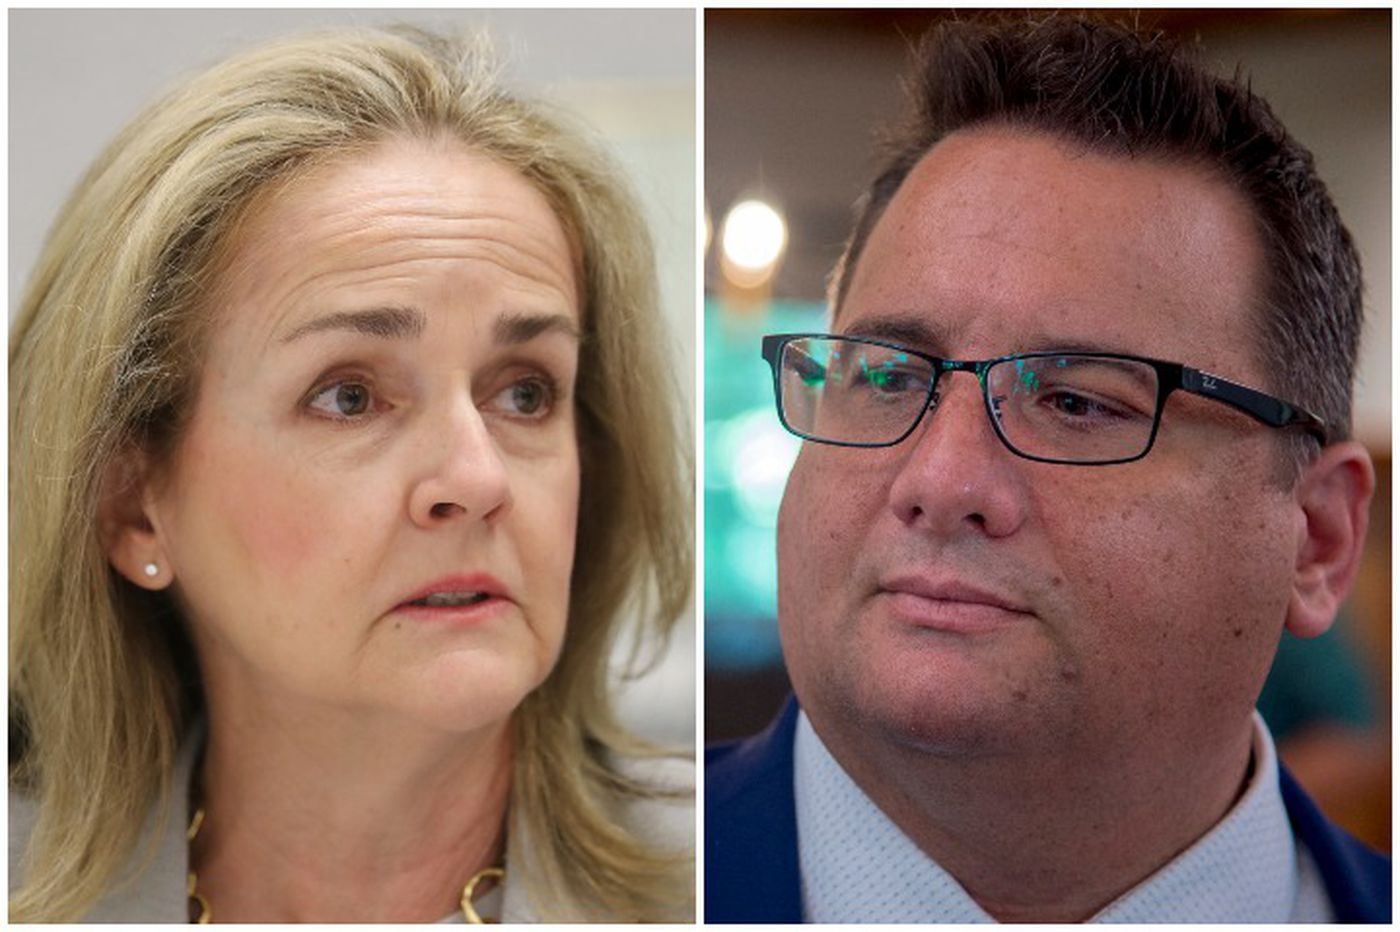 State Rep. Madeleine Dean and businessman Dan David contend to represent Montco's newly drawn congressional district